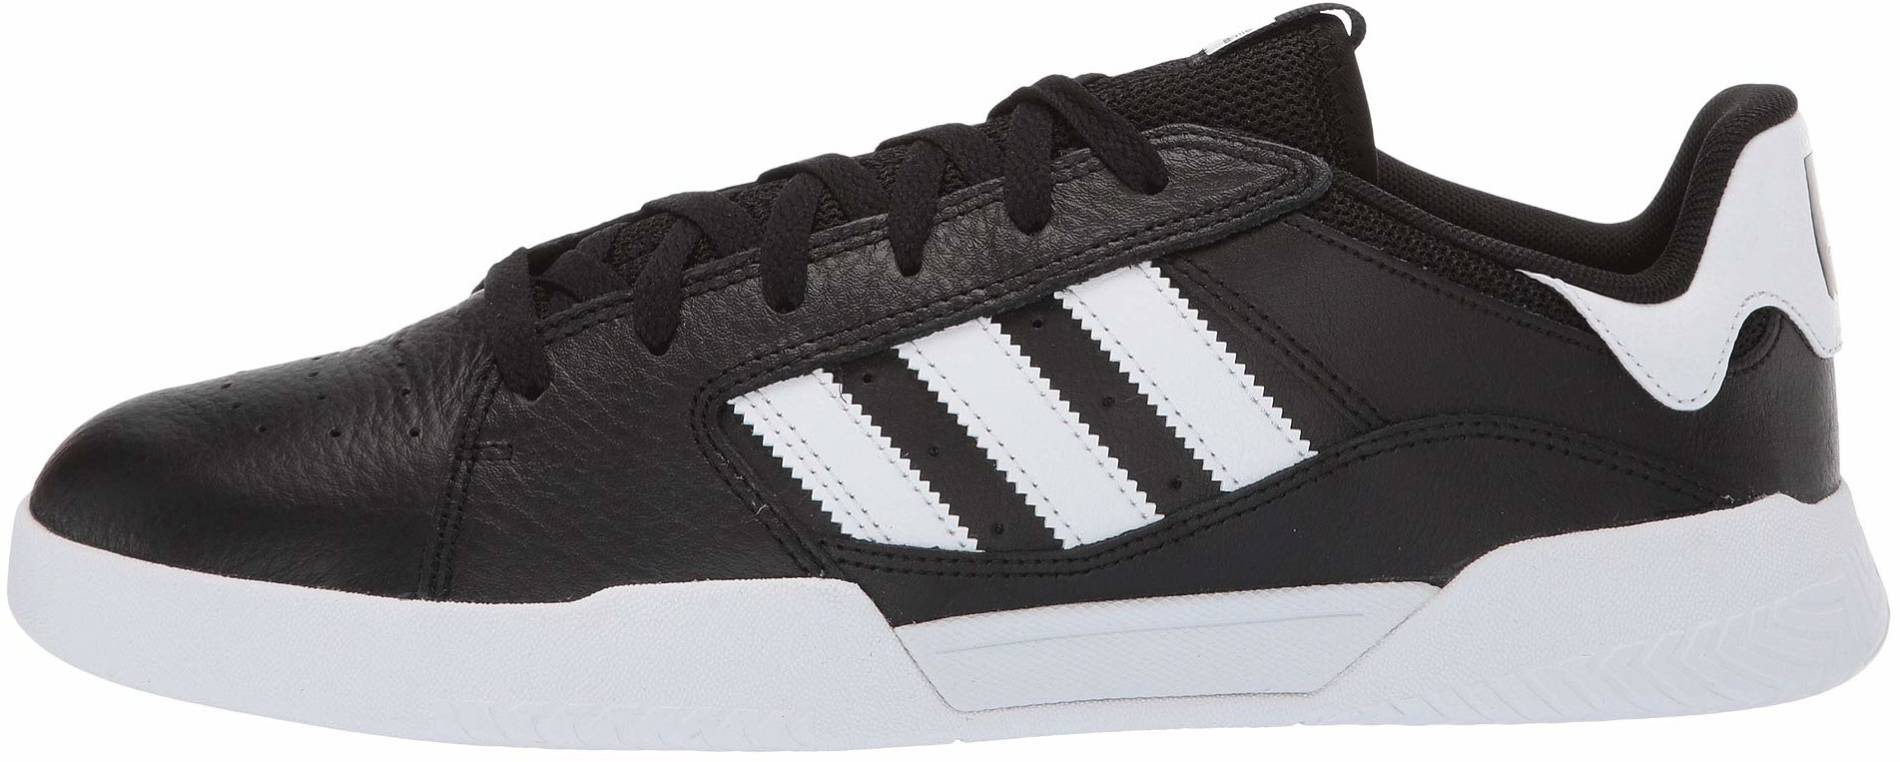 Only $40 + Review of Adidas VRX Cup Low